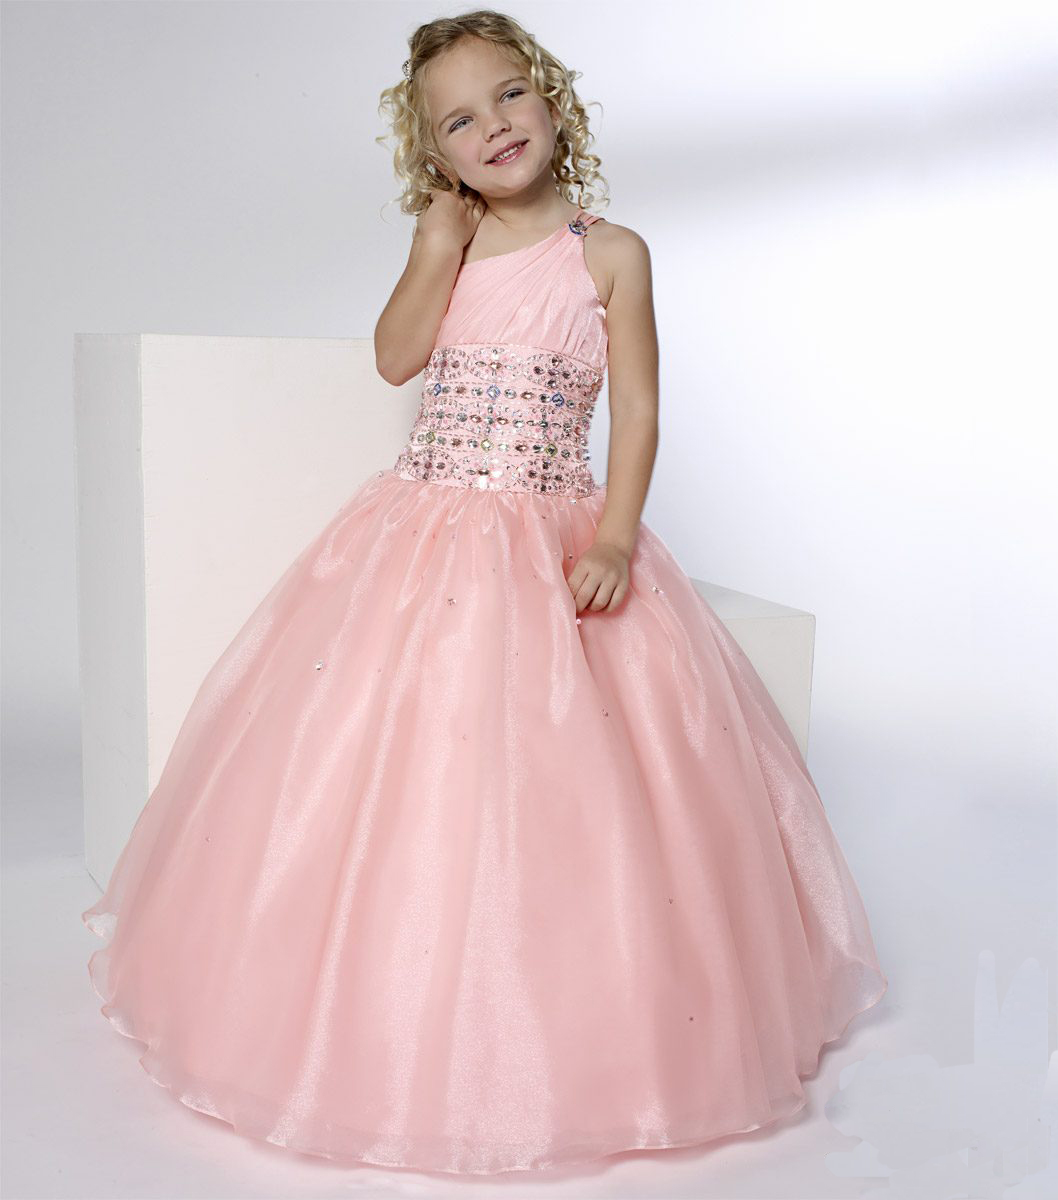 long pink cute junior bridesmaid dress with colorful beaded accents on the waistband